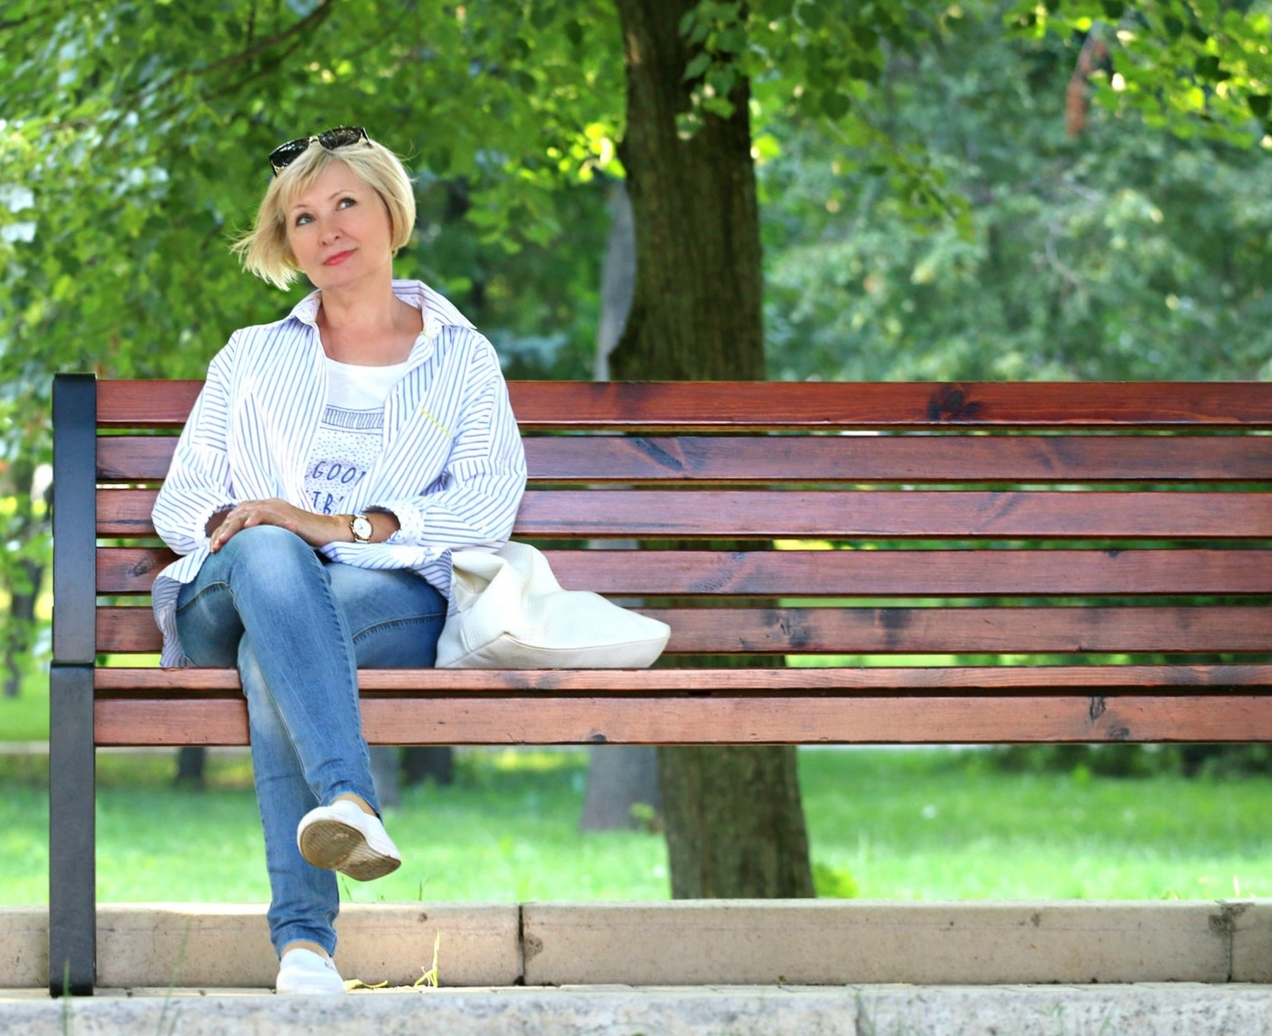 woman-bench-stand-by-blonde-157622.jpeg